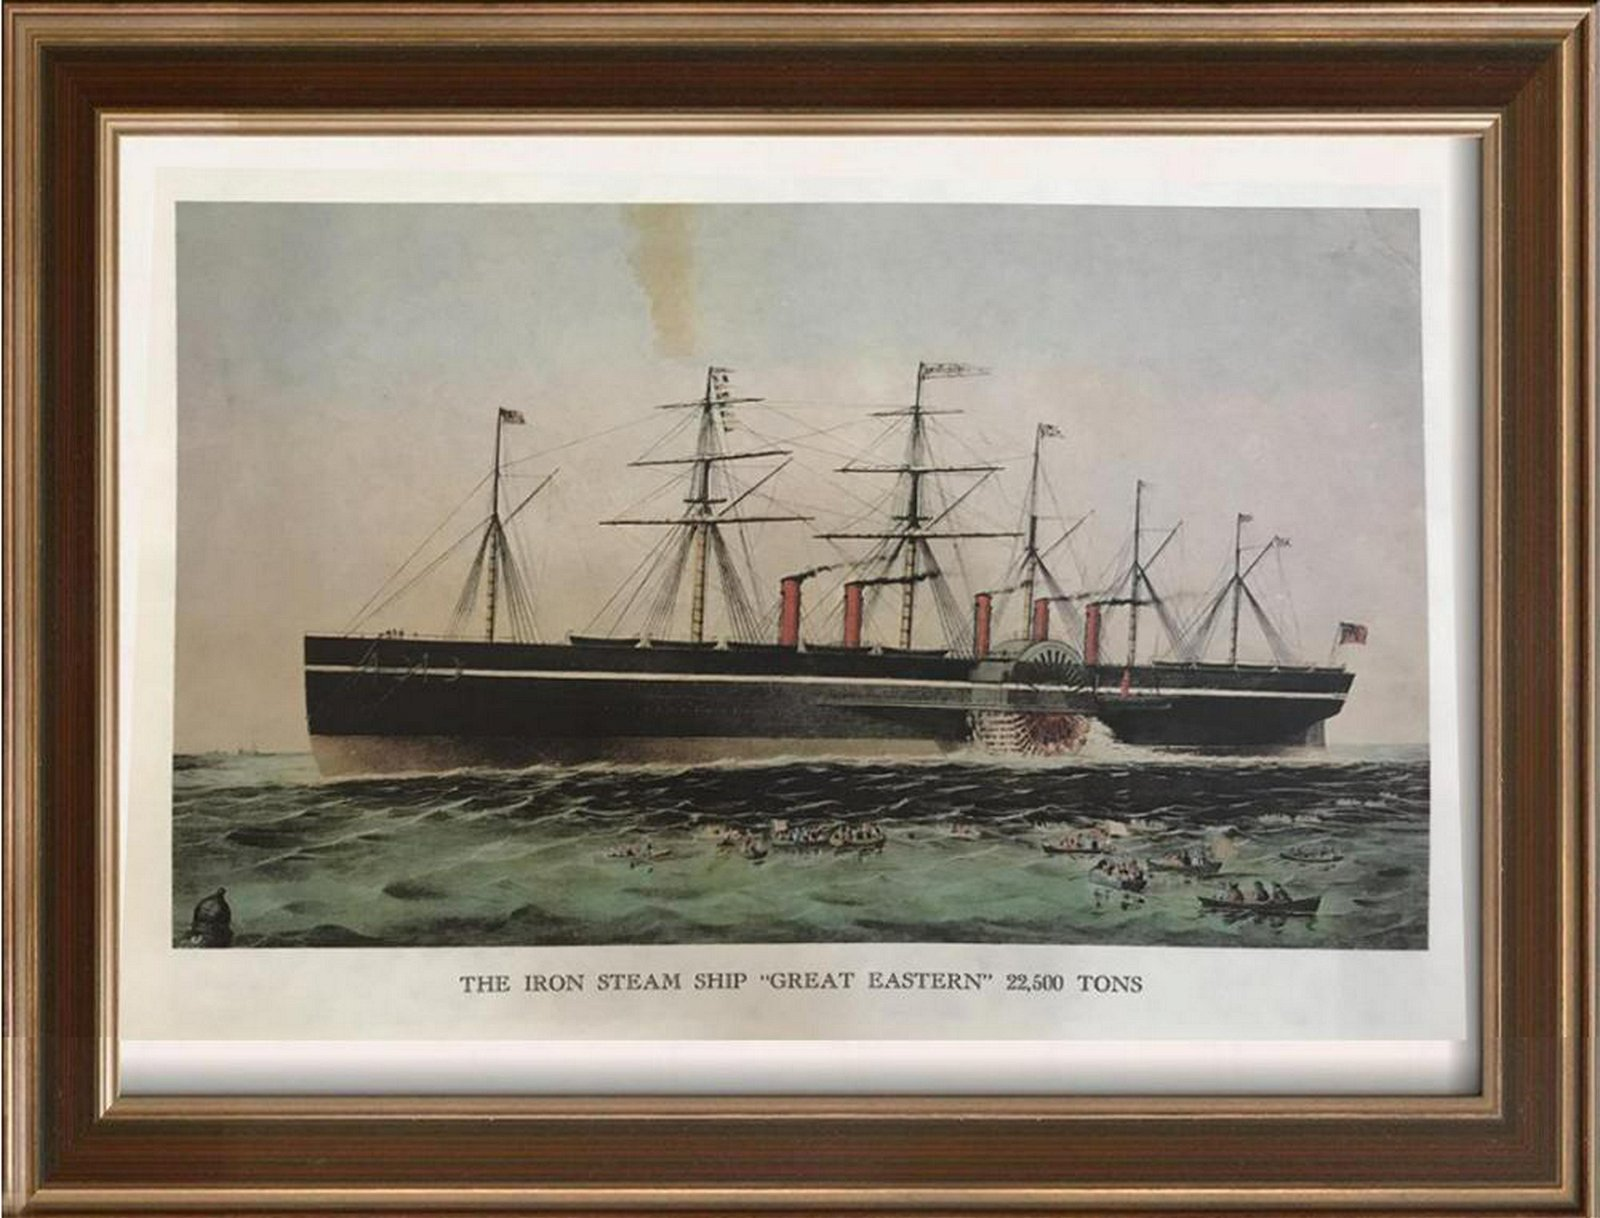 Steam Ships: The Iron Steam Ship Great Eastern 22,500